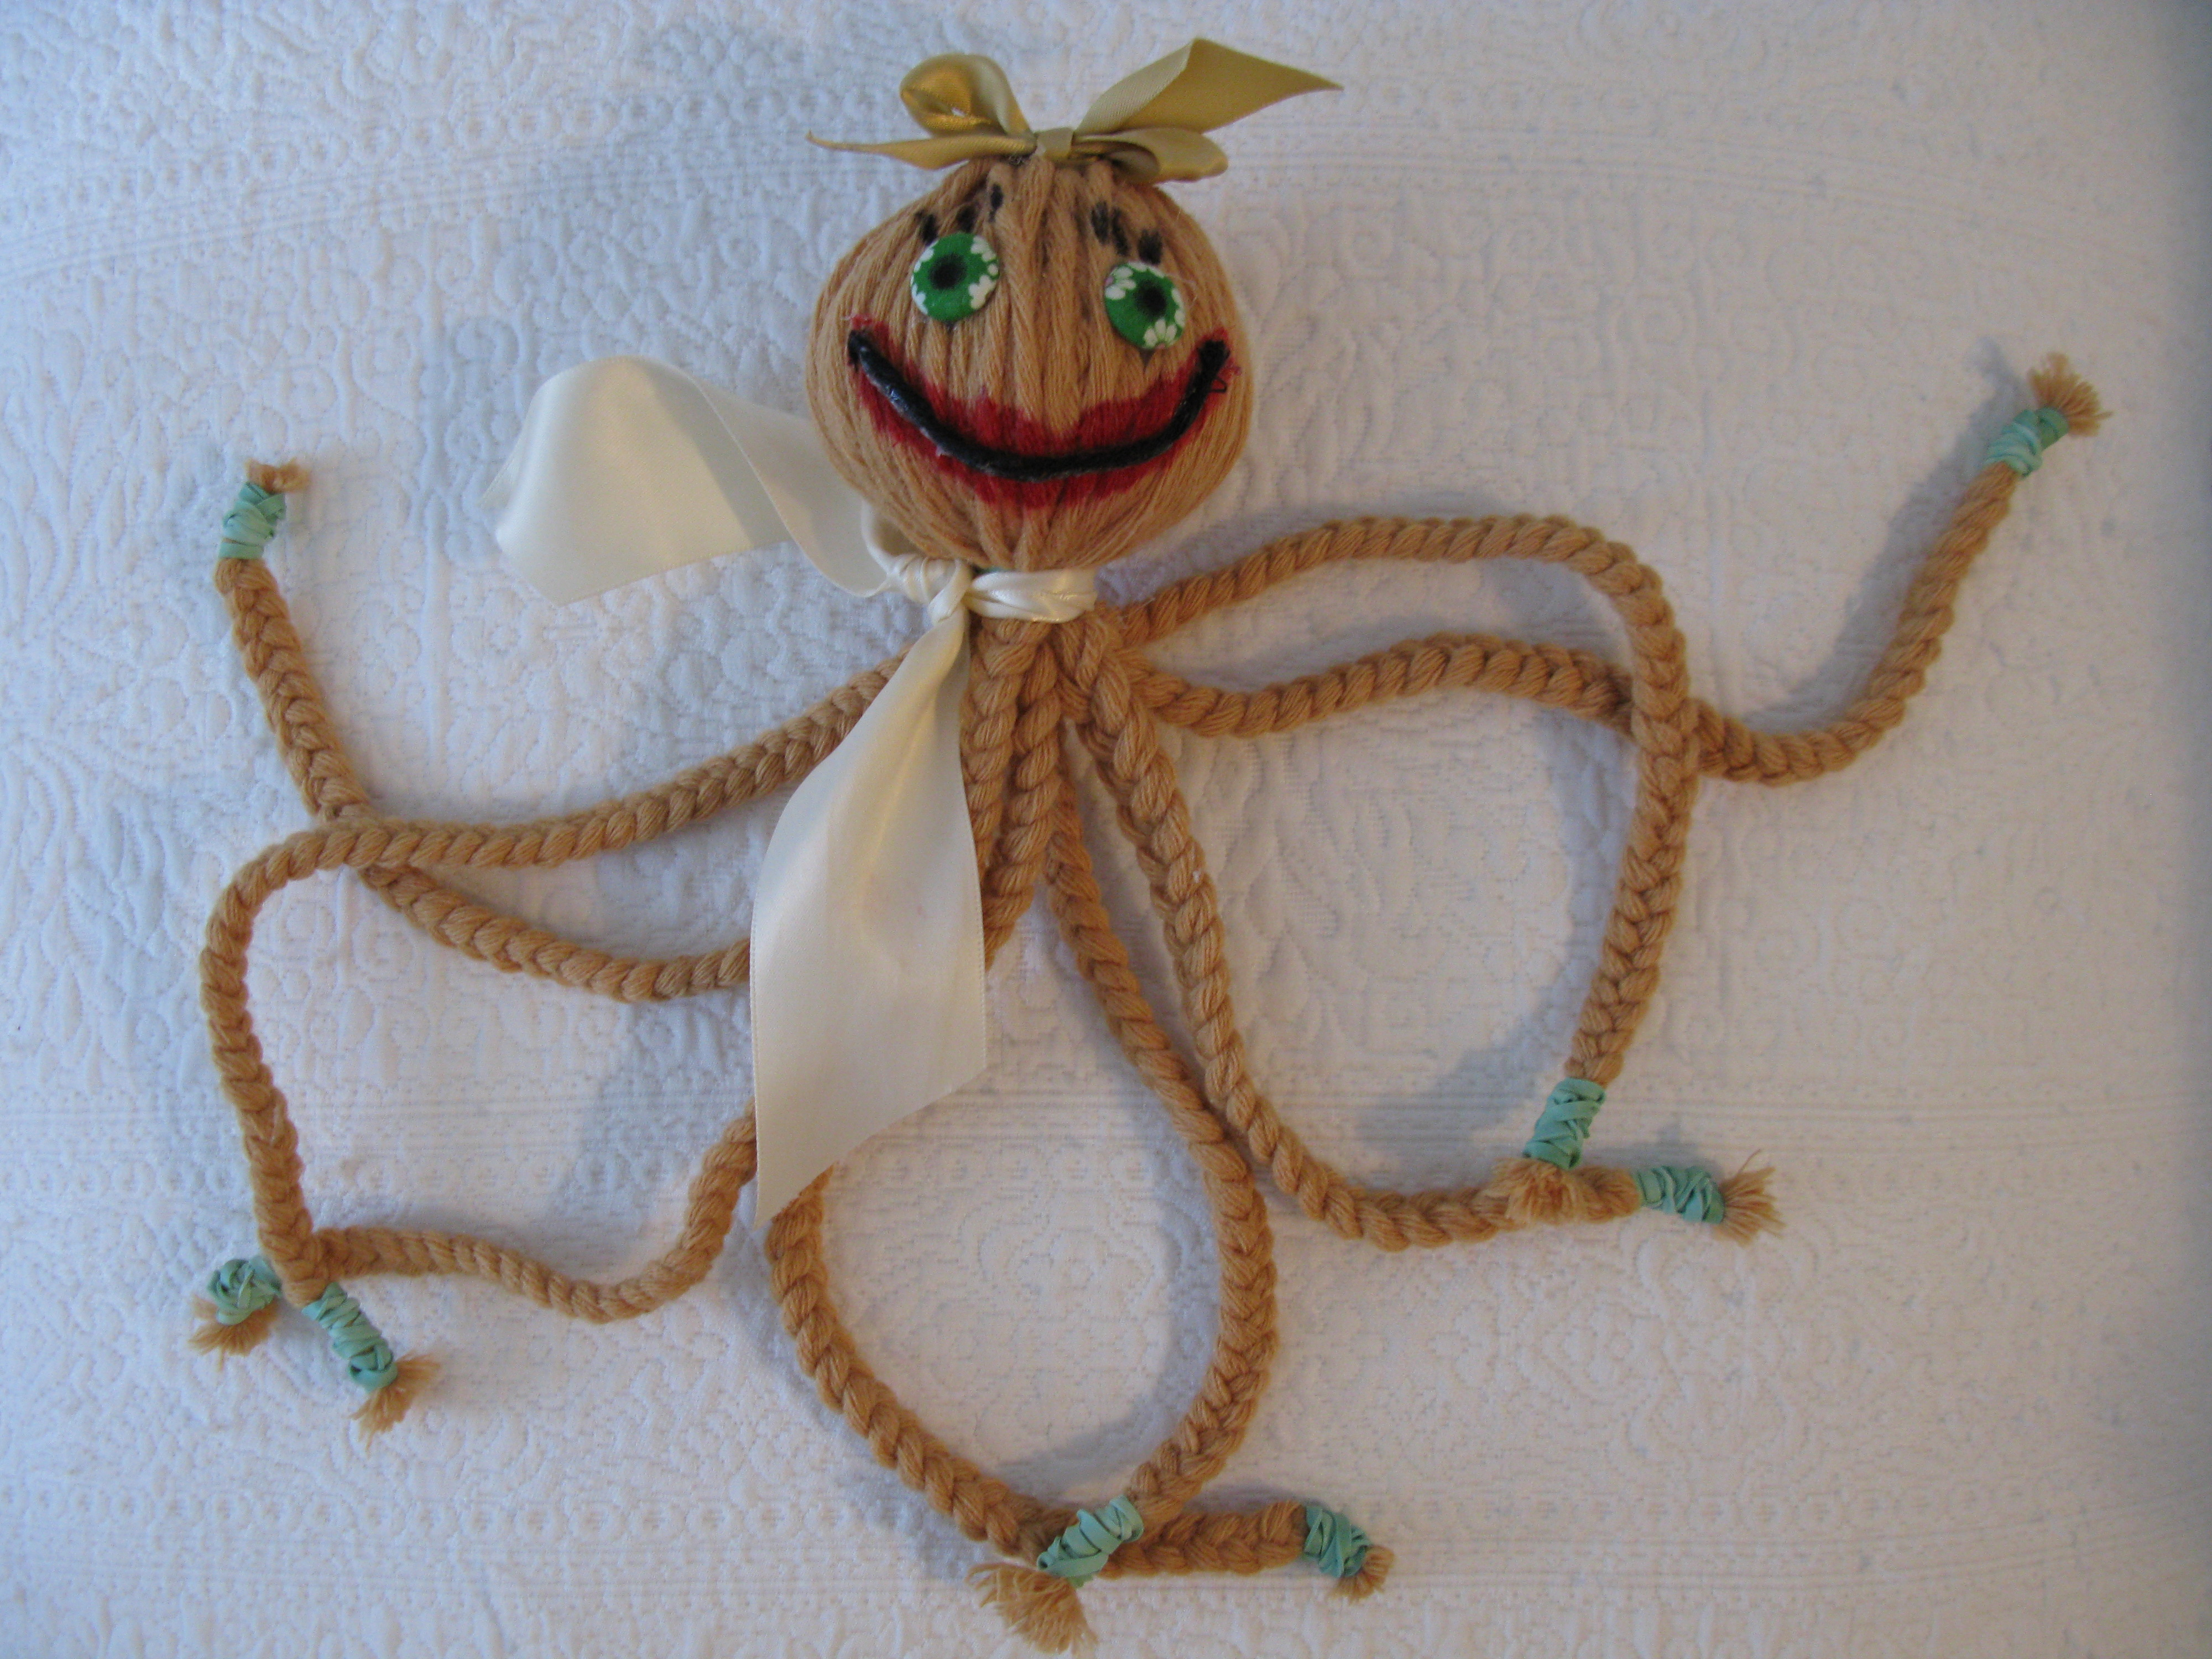 BRAID THAT OCTOPUS - A Craft Project For Kids Ages 4 -10